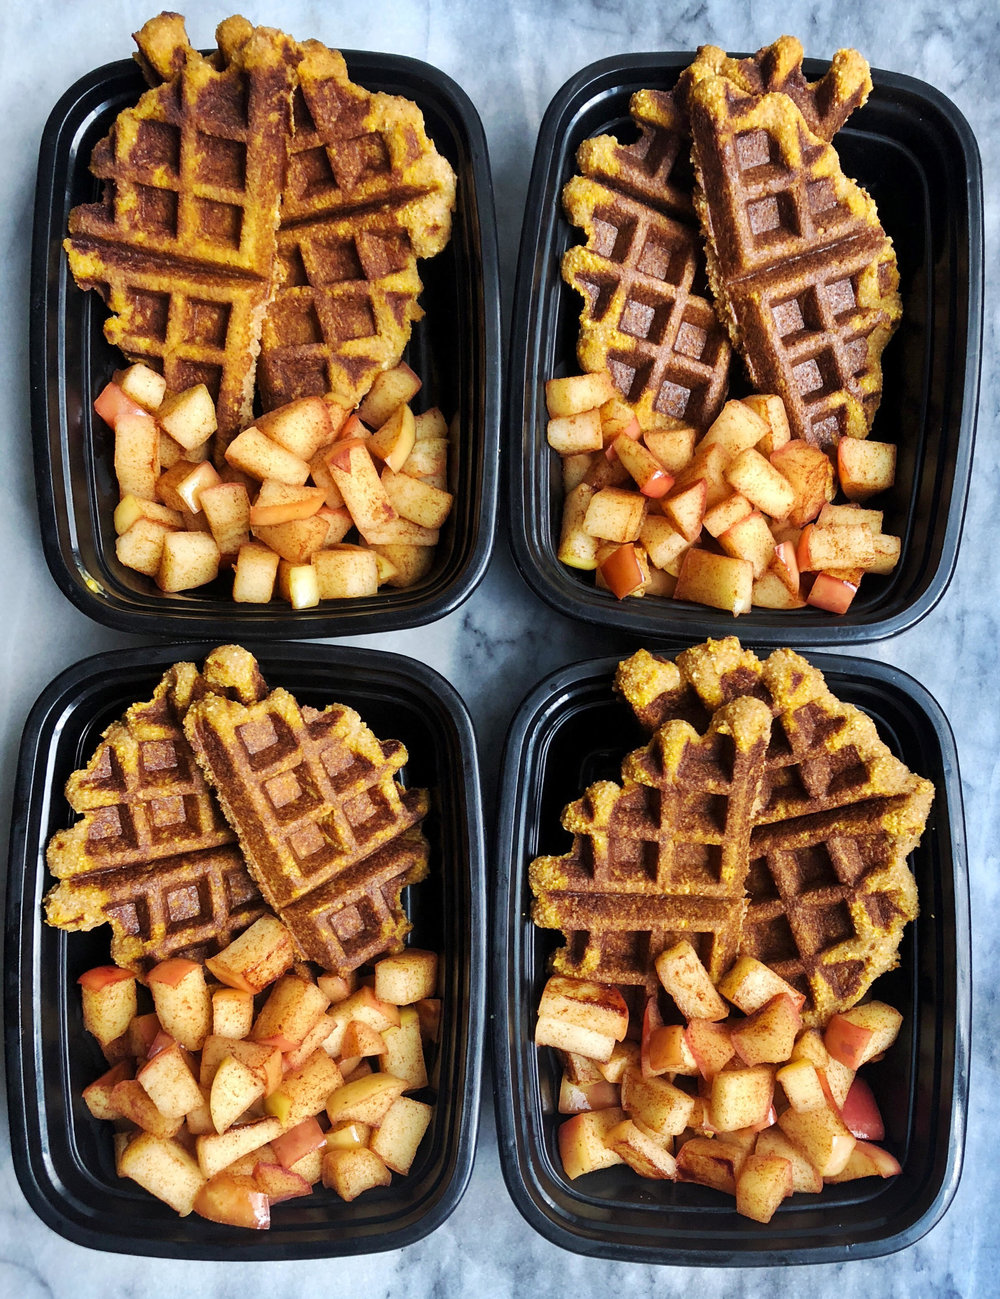 Breakfast meal prep for fall with paleo pumpkin waffles and cinnamon apples. Prep four servings on Sunday and have a delicious breakfast prepped all week.